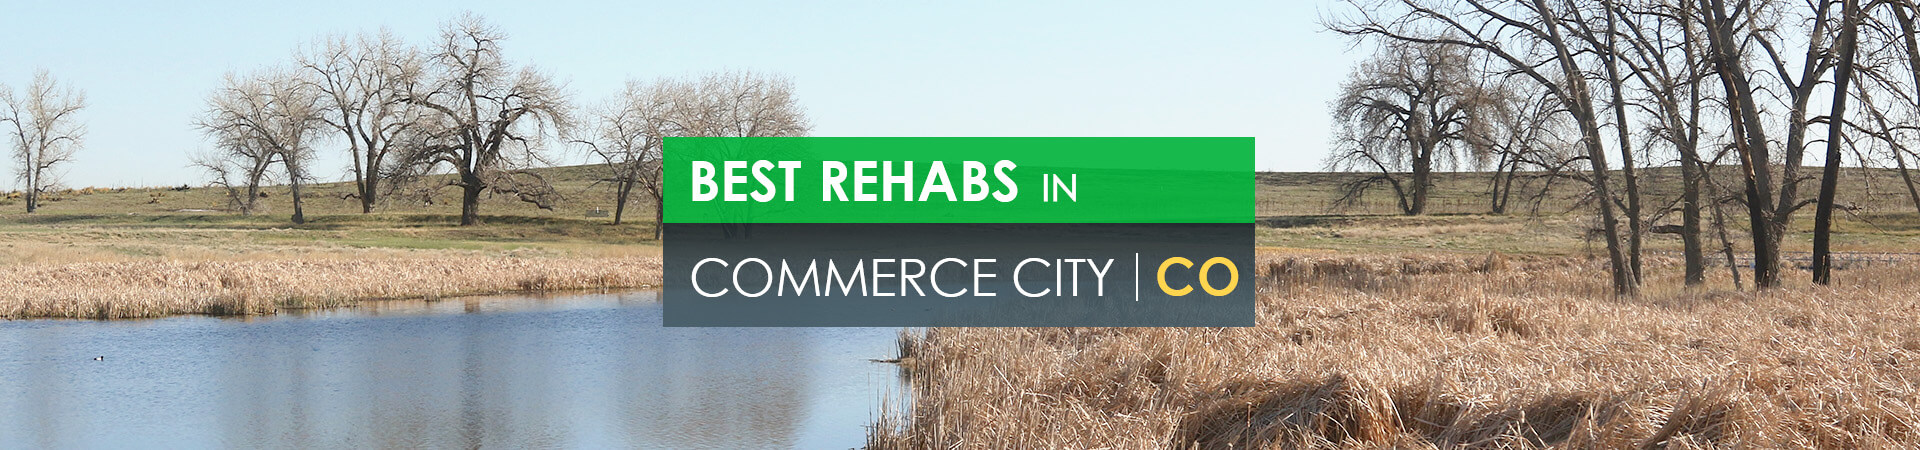 Best rehabs in Commerce City, CO